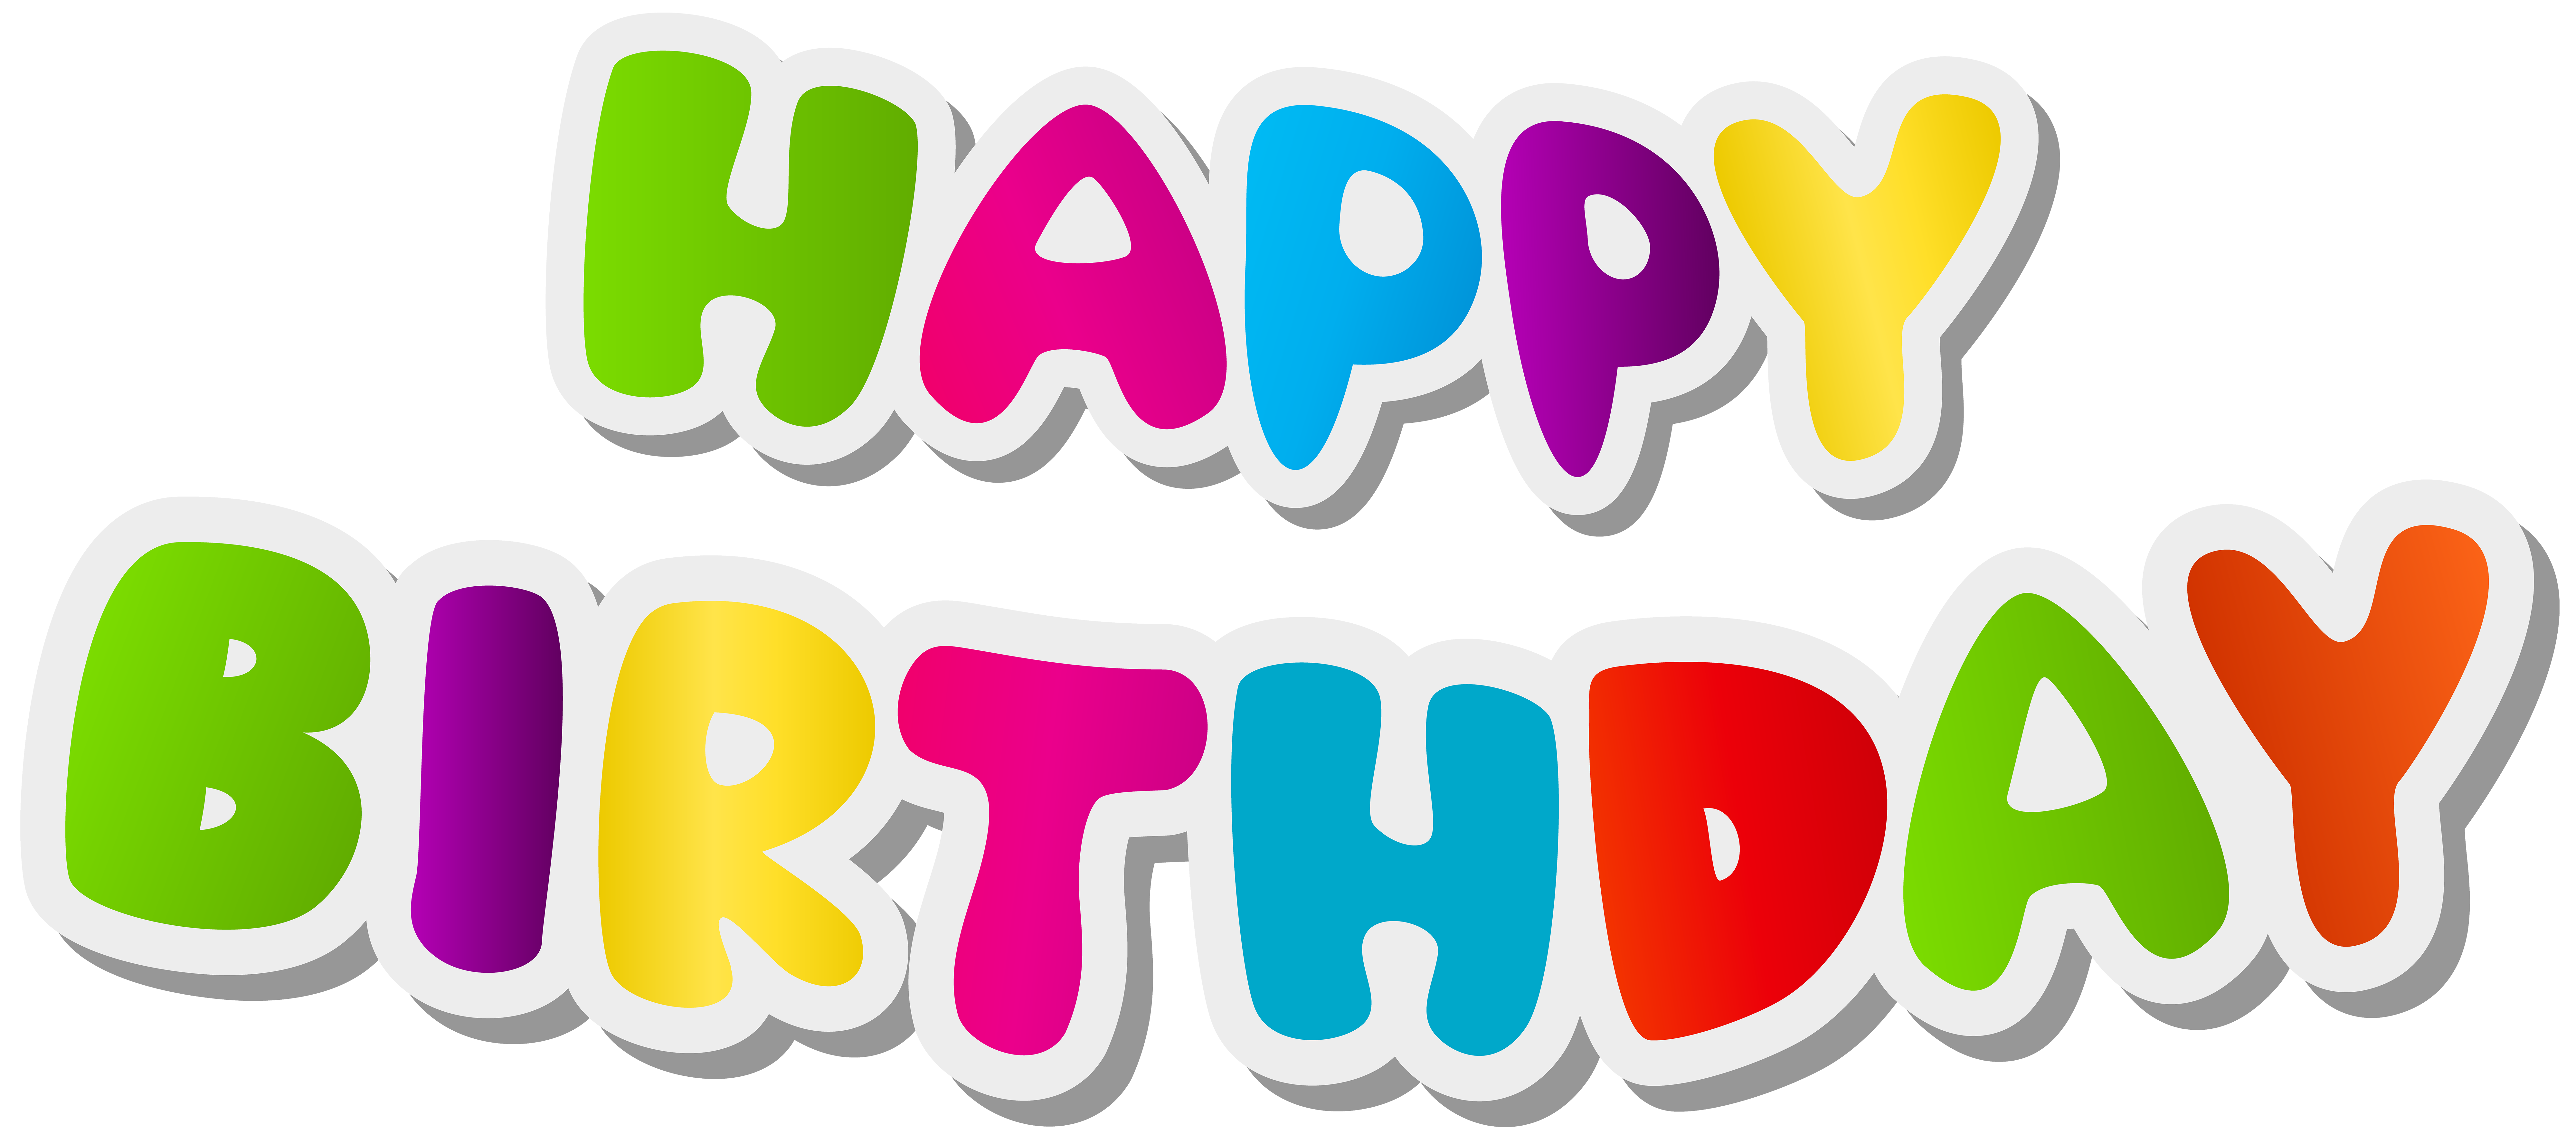 Télécharger photo birthday text png